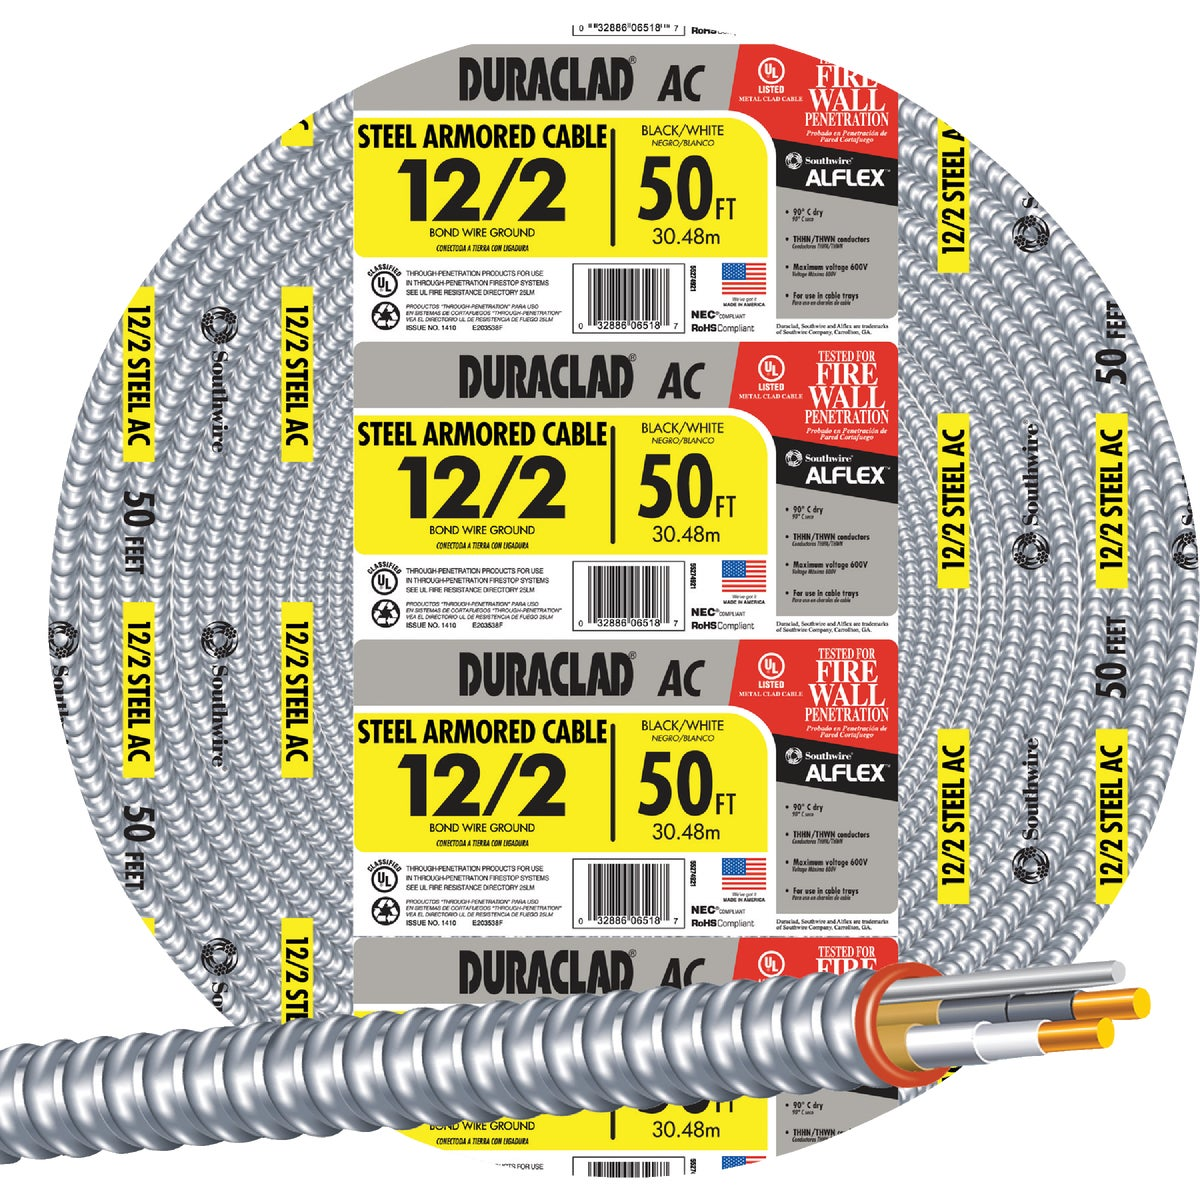 50' 12/2 STL ARMOR CABLE - 55274922 by Southwire Company